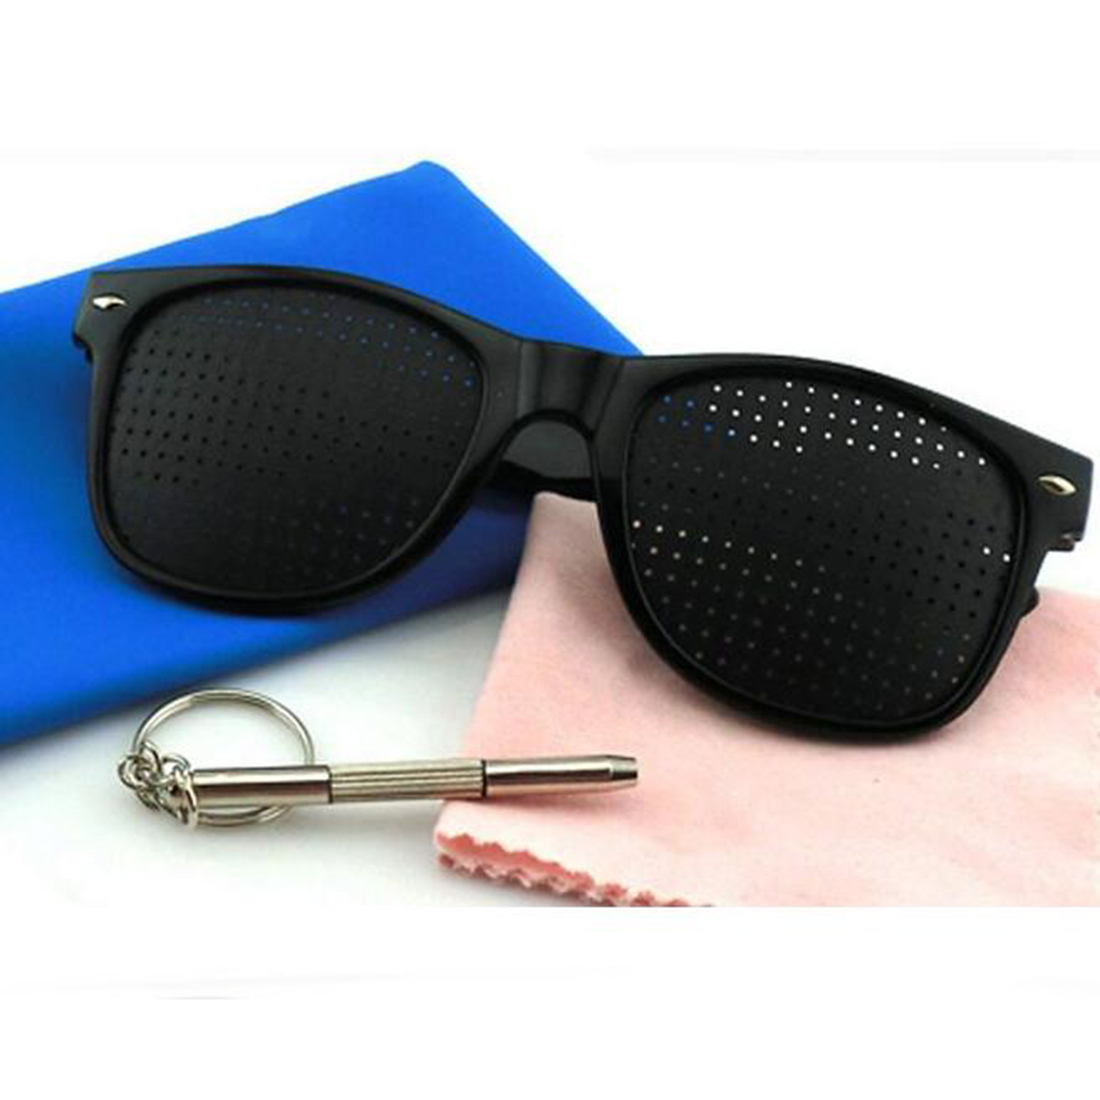 2016 vision care safety protection glasses eyesight